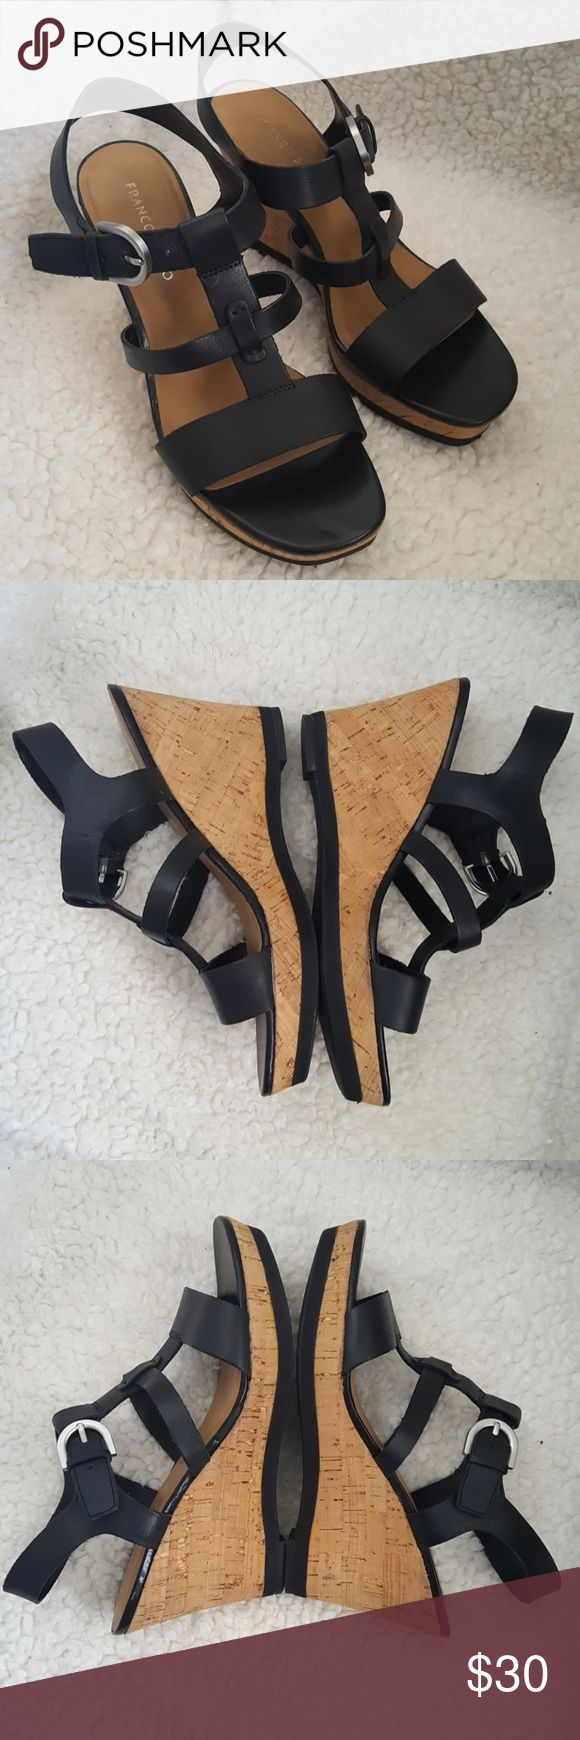 Corey Leather Wedge Sandals In Great condition, barely worn. Upper is leather and balance is man made material. Franco Sarto Shoes Wedges